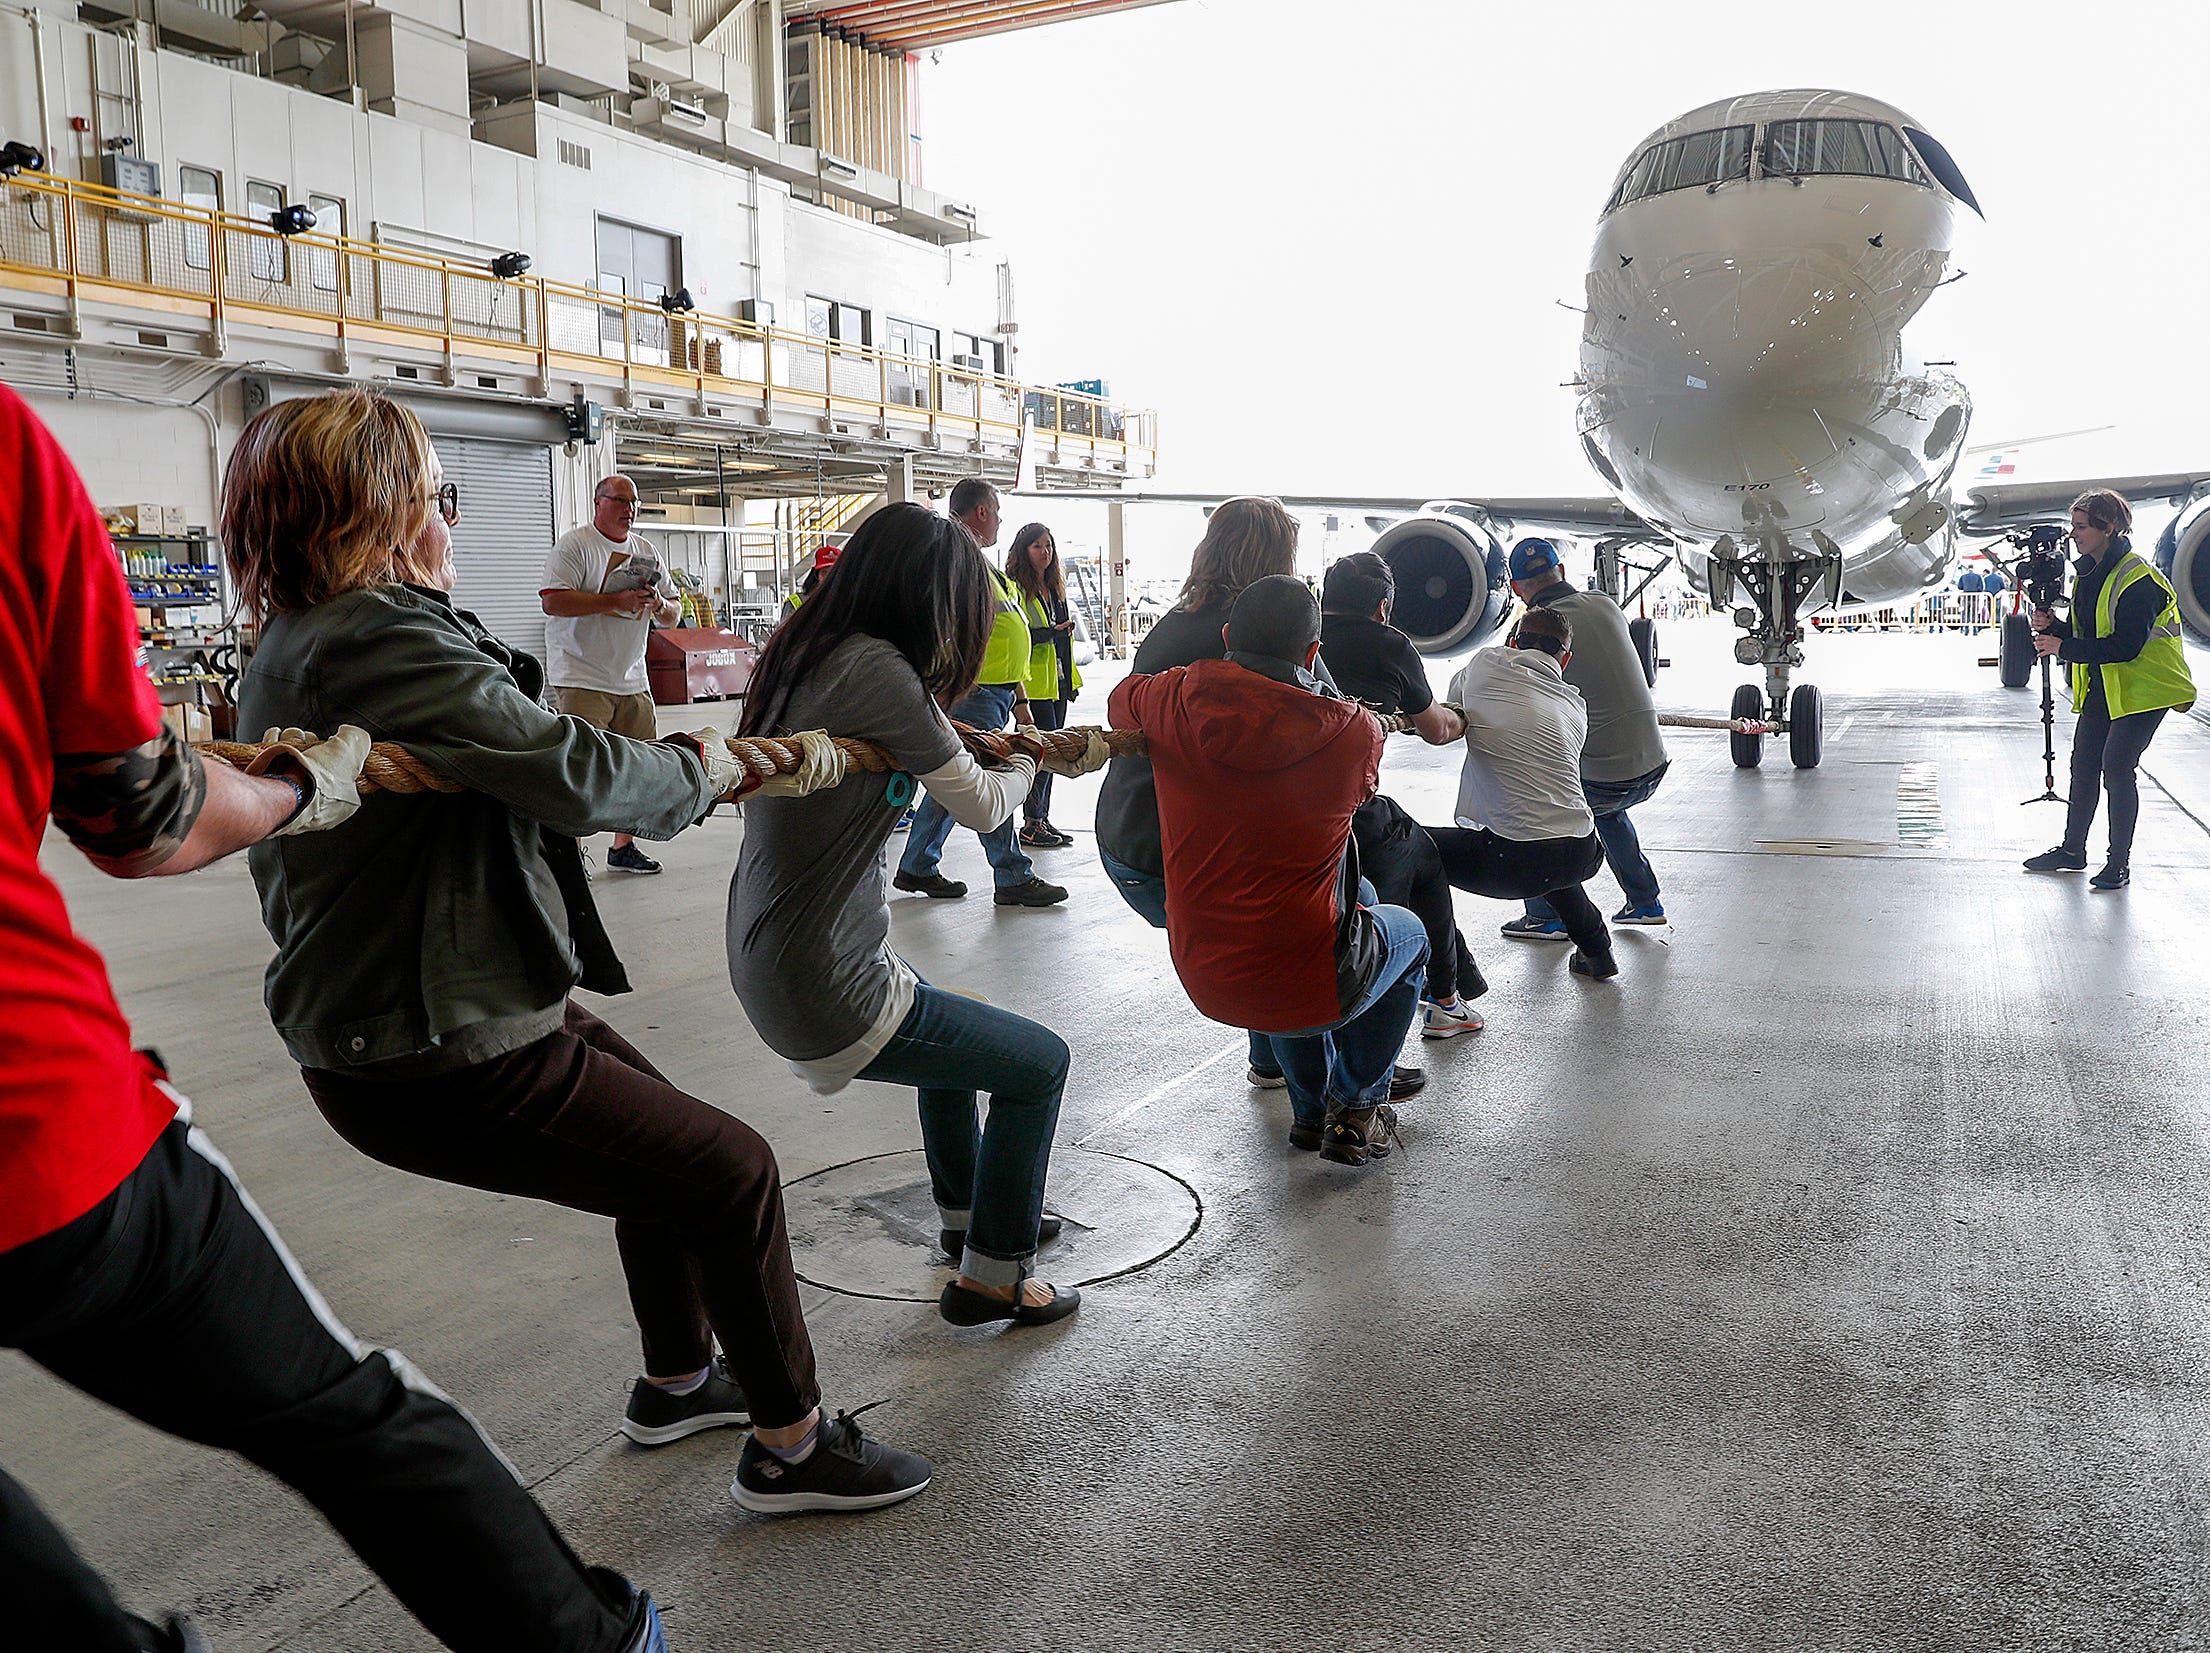 Team Expediant pulls an Embraer 170/175 aircraft 15 feet during the 9th Annual Republic Airways Plane Pull at the Republic Airways Hanger at the Indianapolis International Airport on Saturday, April 13, 2019.